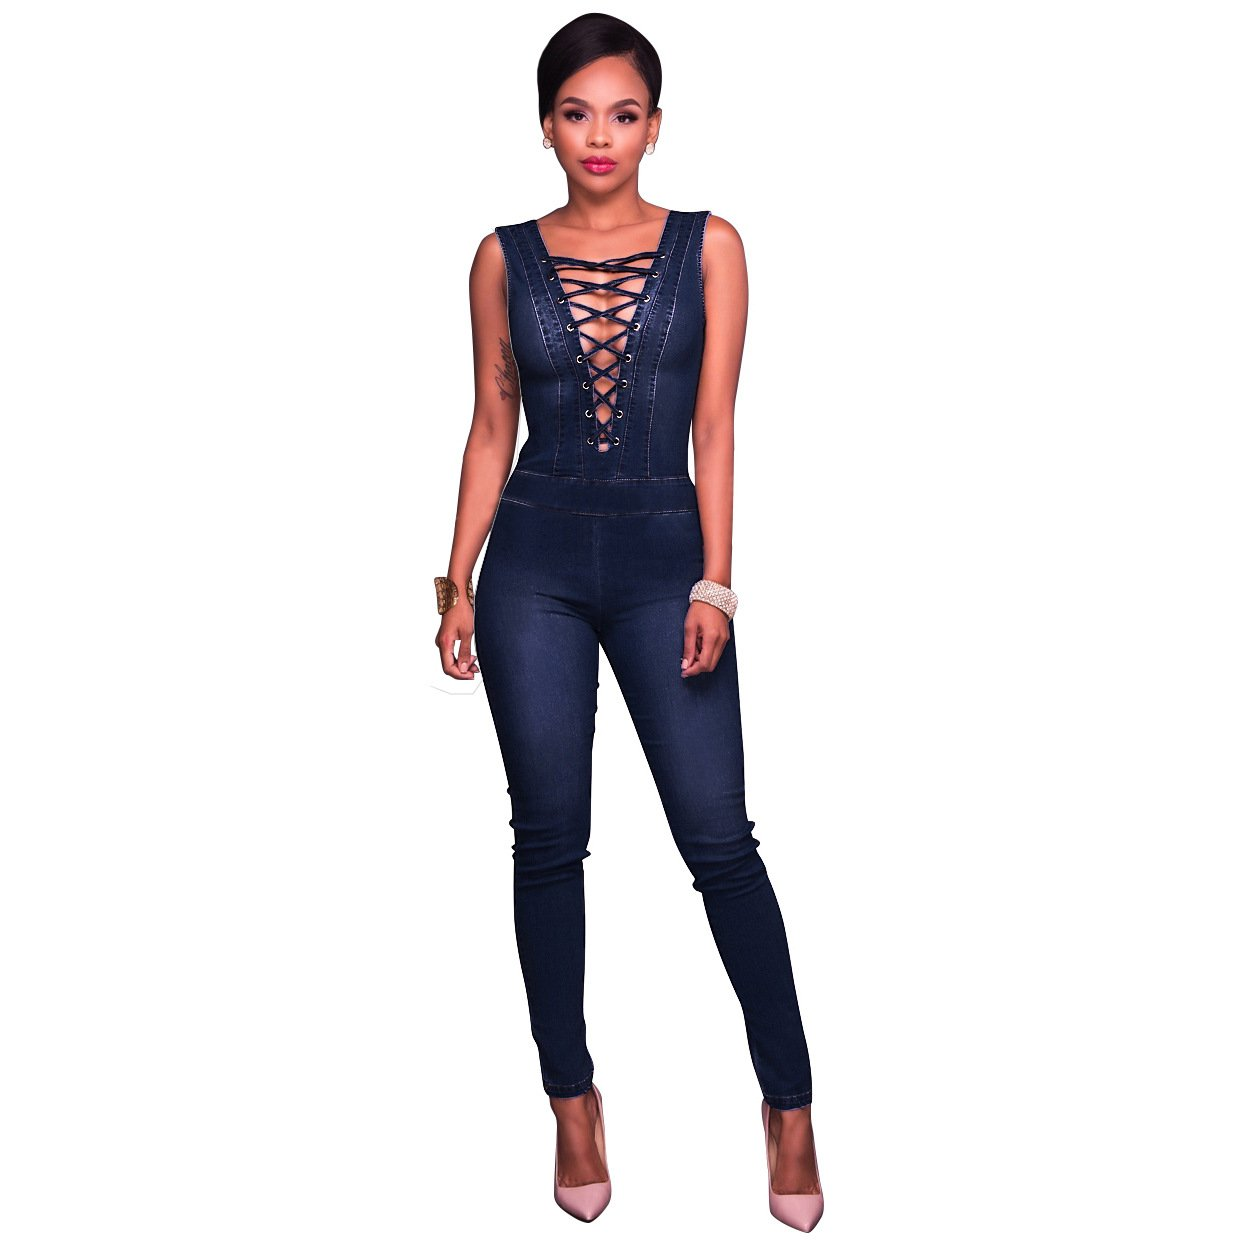 Felicity Young Women Sexy Deep V Neck Sleeveless Lace Up Bodycon Denim Jumpsuit Romper Dark Blue, XX-Large